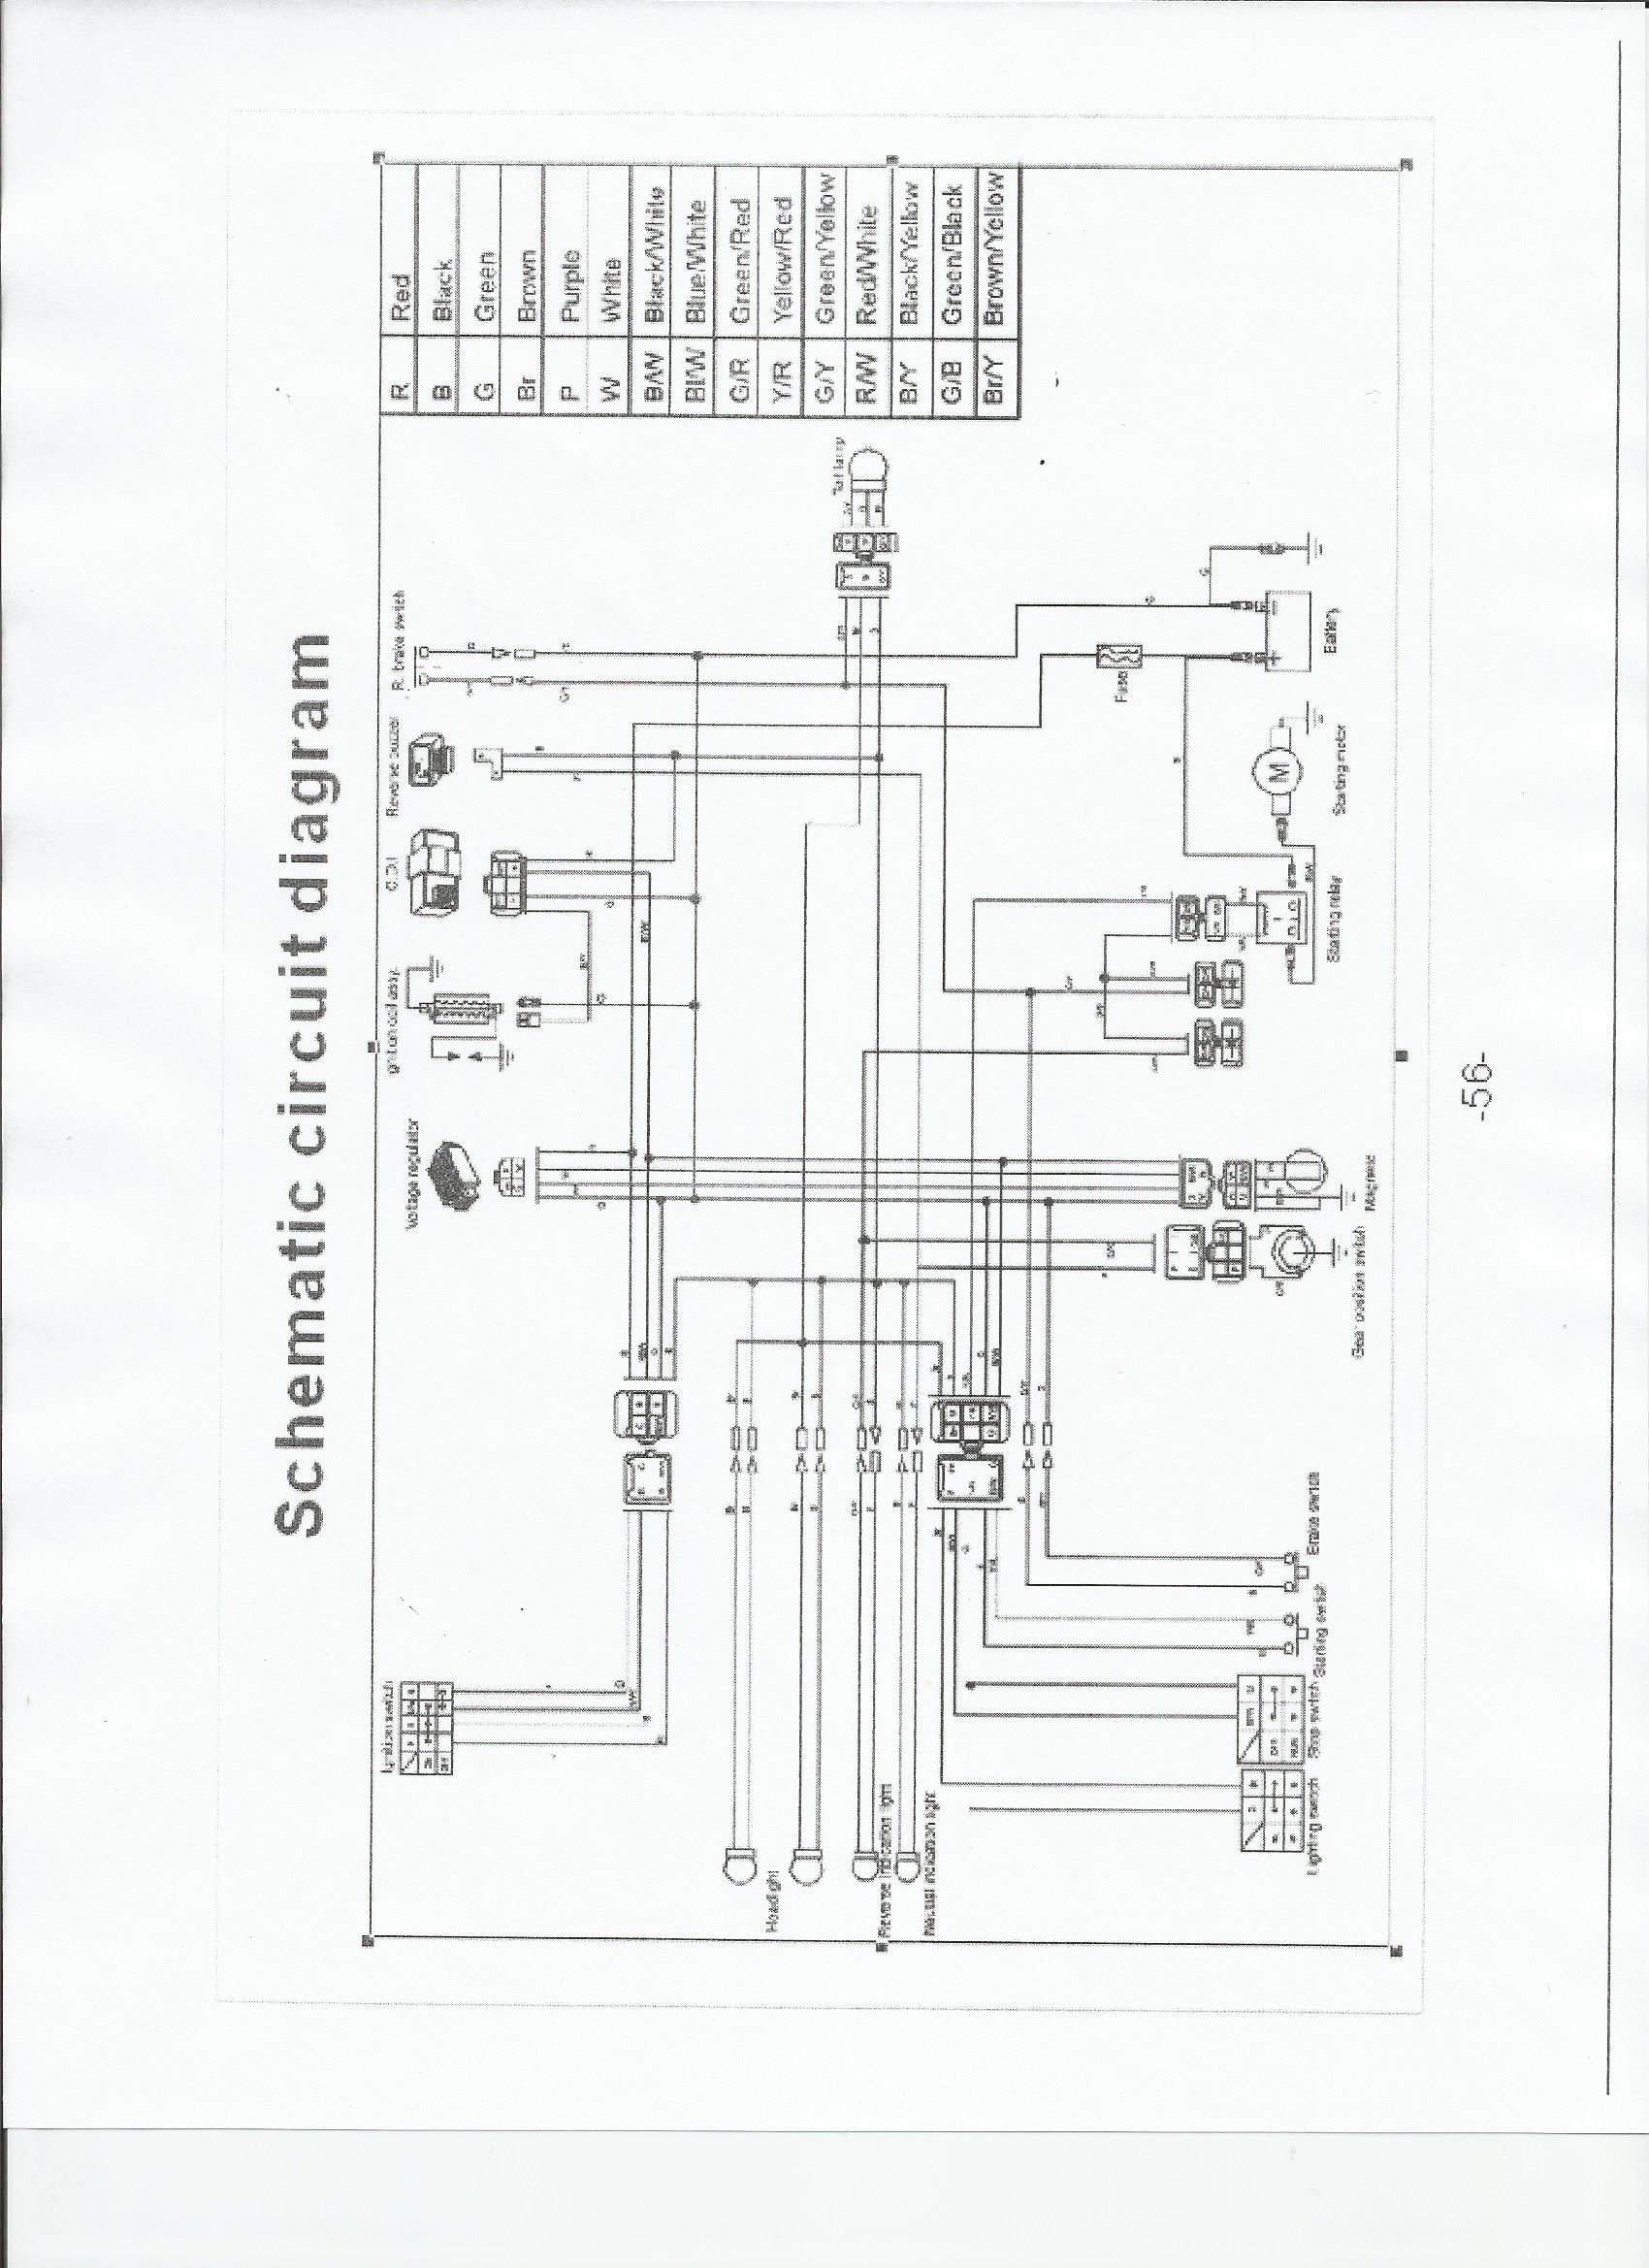 tao tao wiring schematic taotao mini and youth atv wiring schematic familygokarts support taotao ata110 b wiring diagram at bayanpartner.co